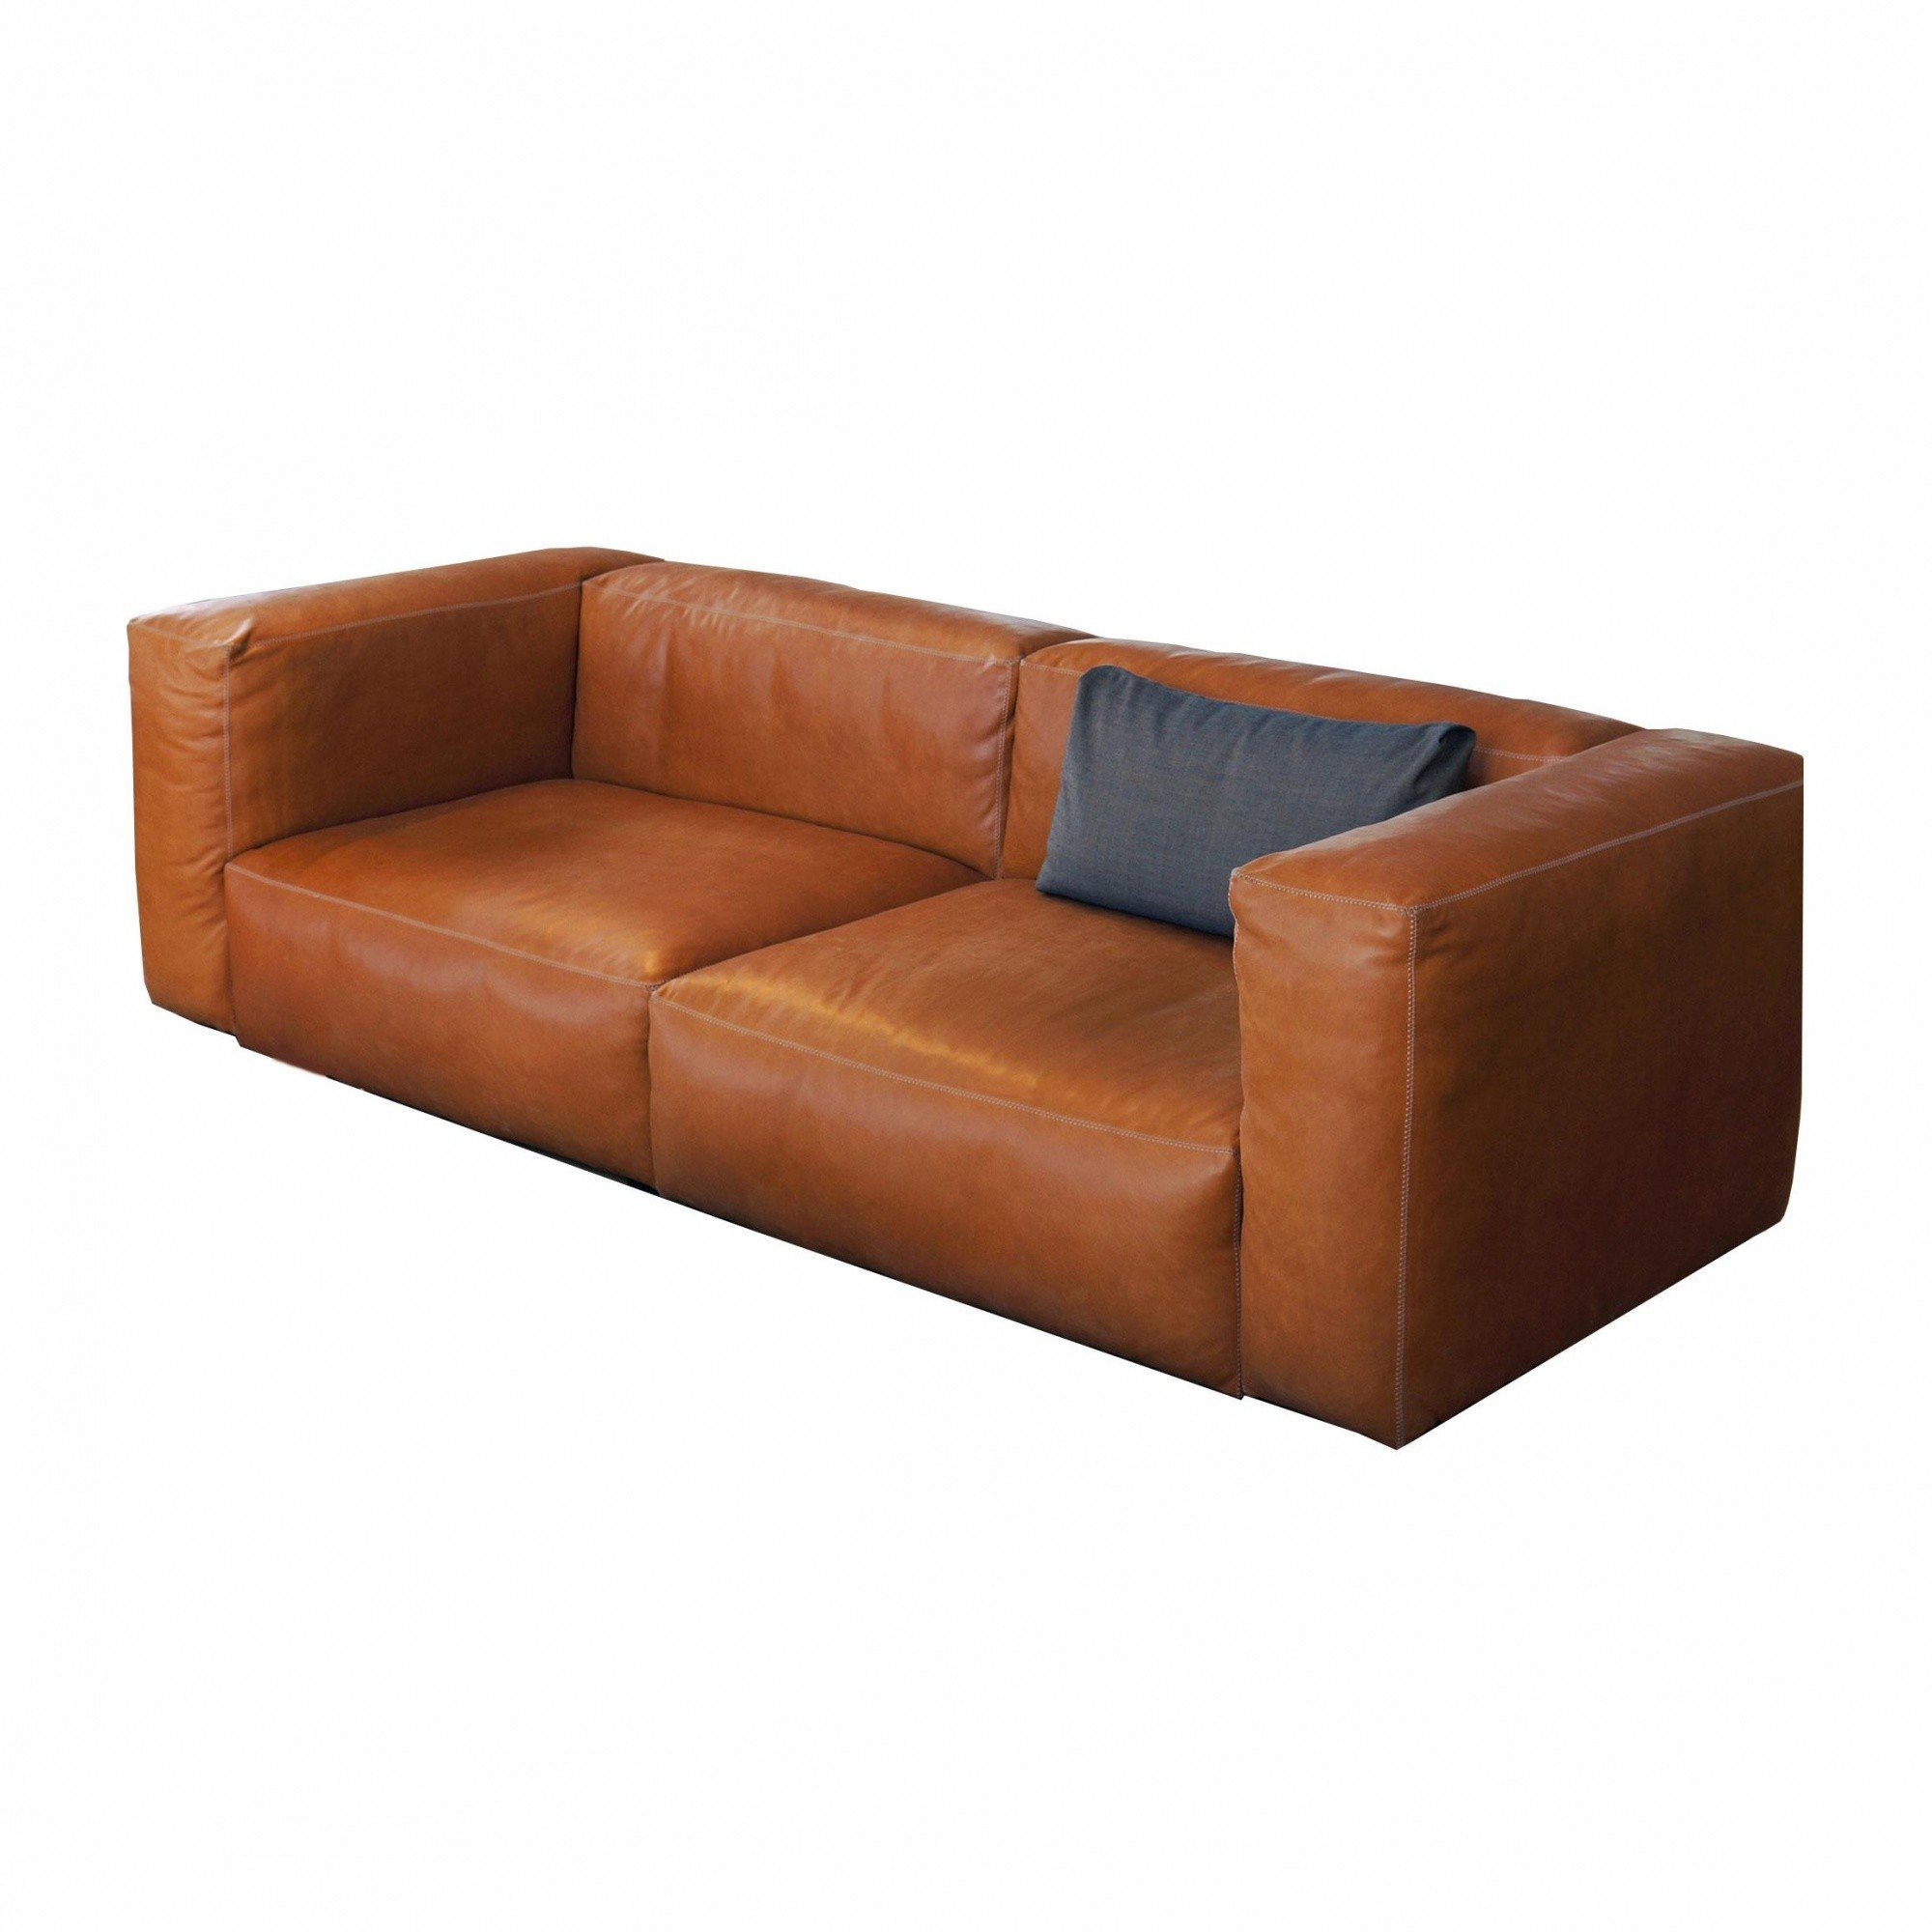 Hay Mags Soft 2 5 Seater Leather Sofa 228x95 5x67 Ambientedirect